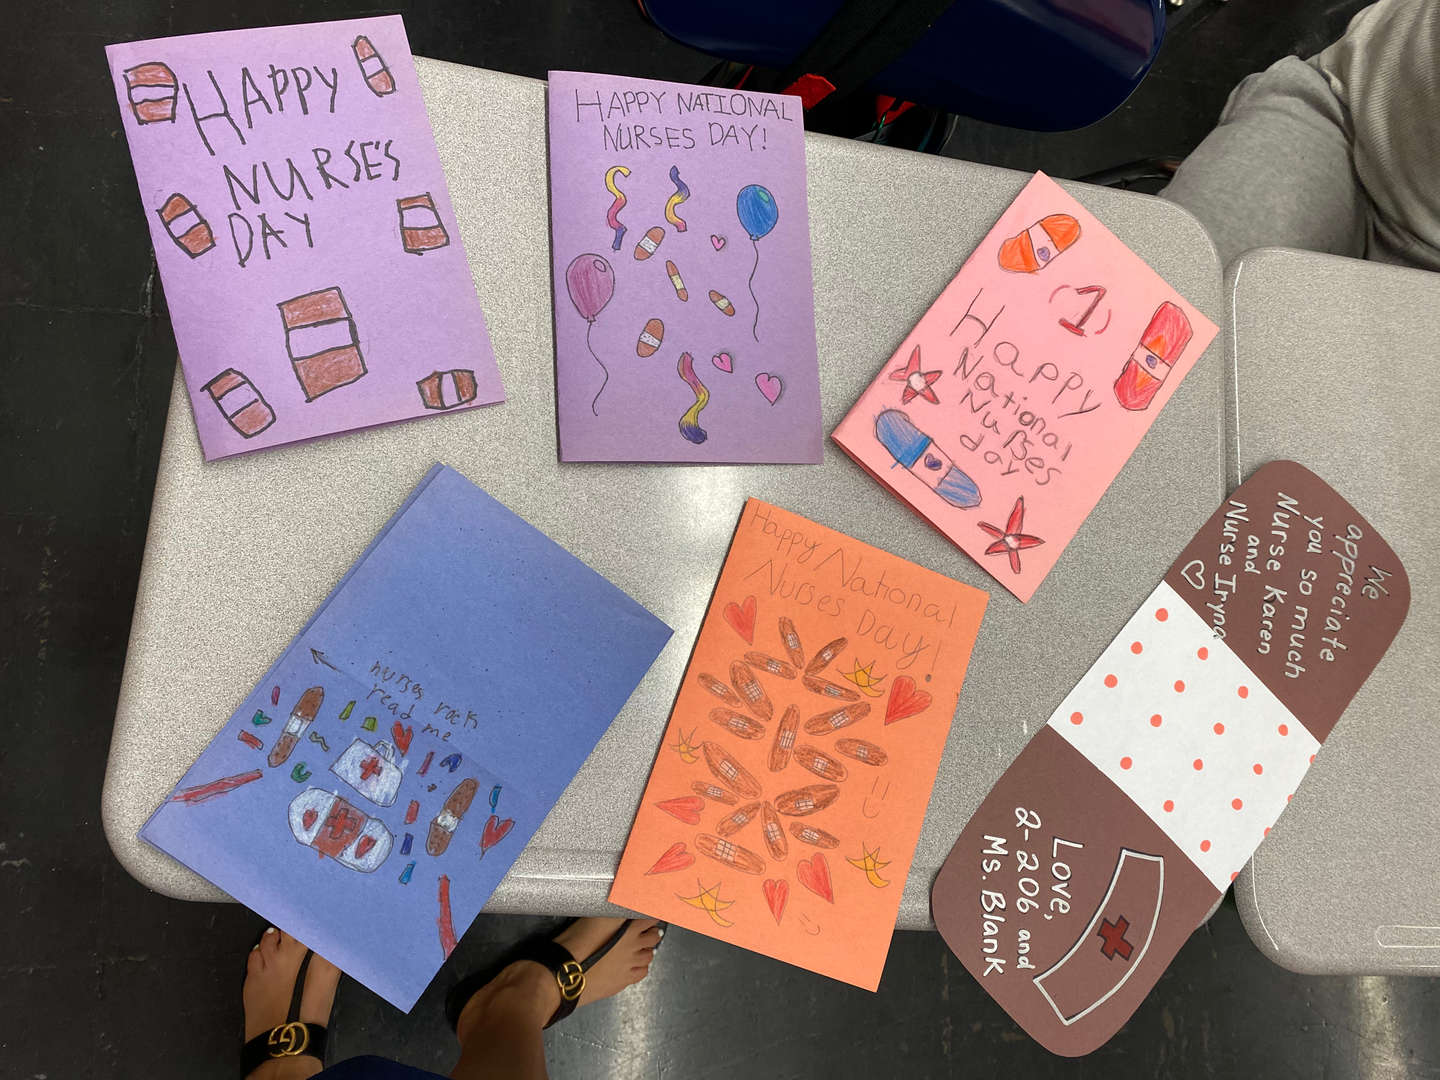 A display of thank you cards drawn by students